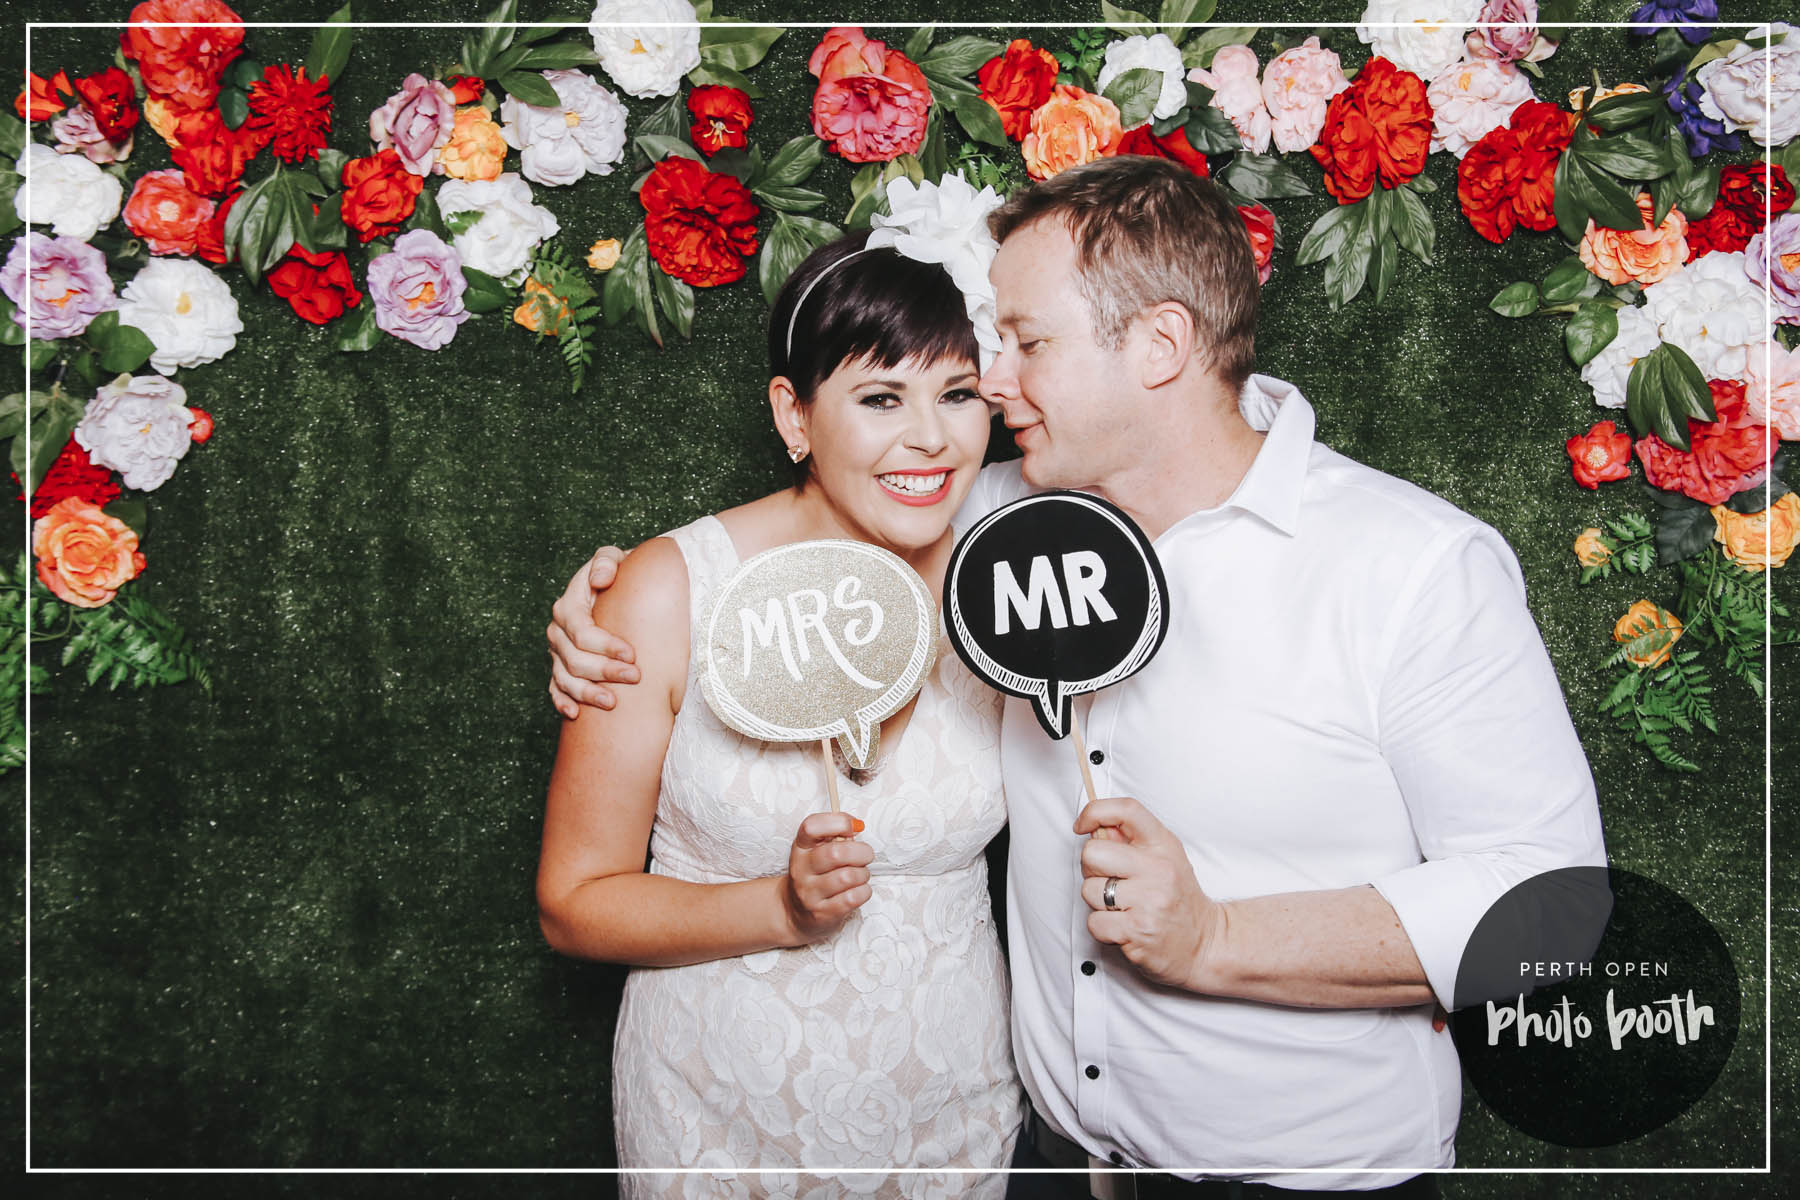 Kate + Dave's Wedding - Password provided on the night- All lowercase -